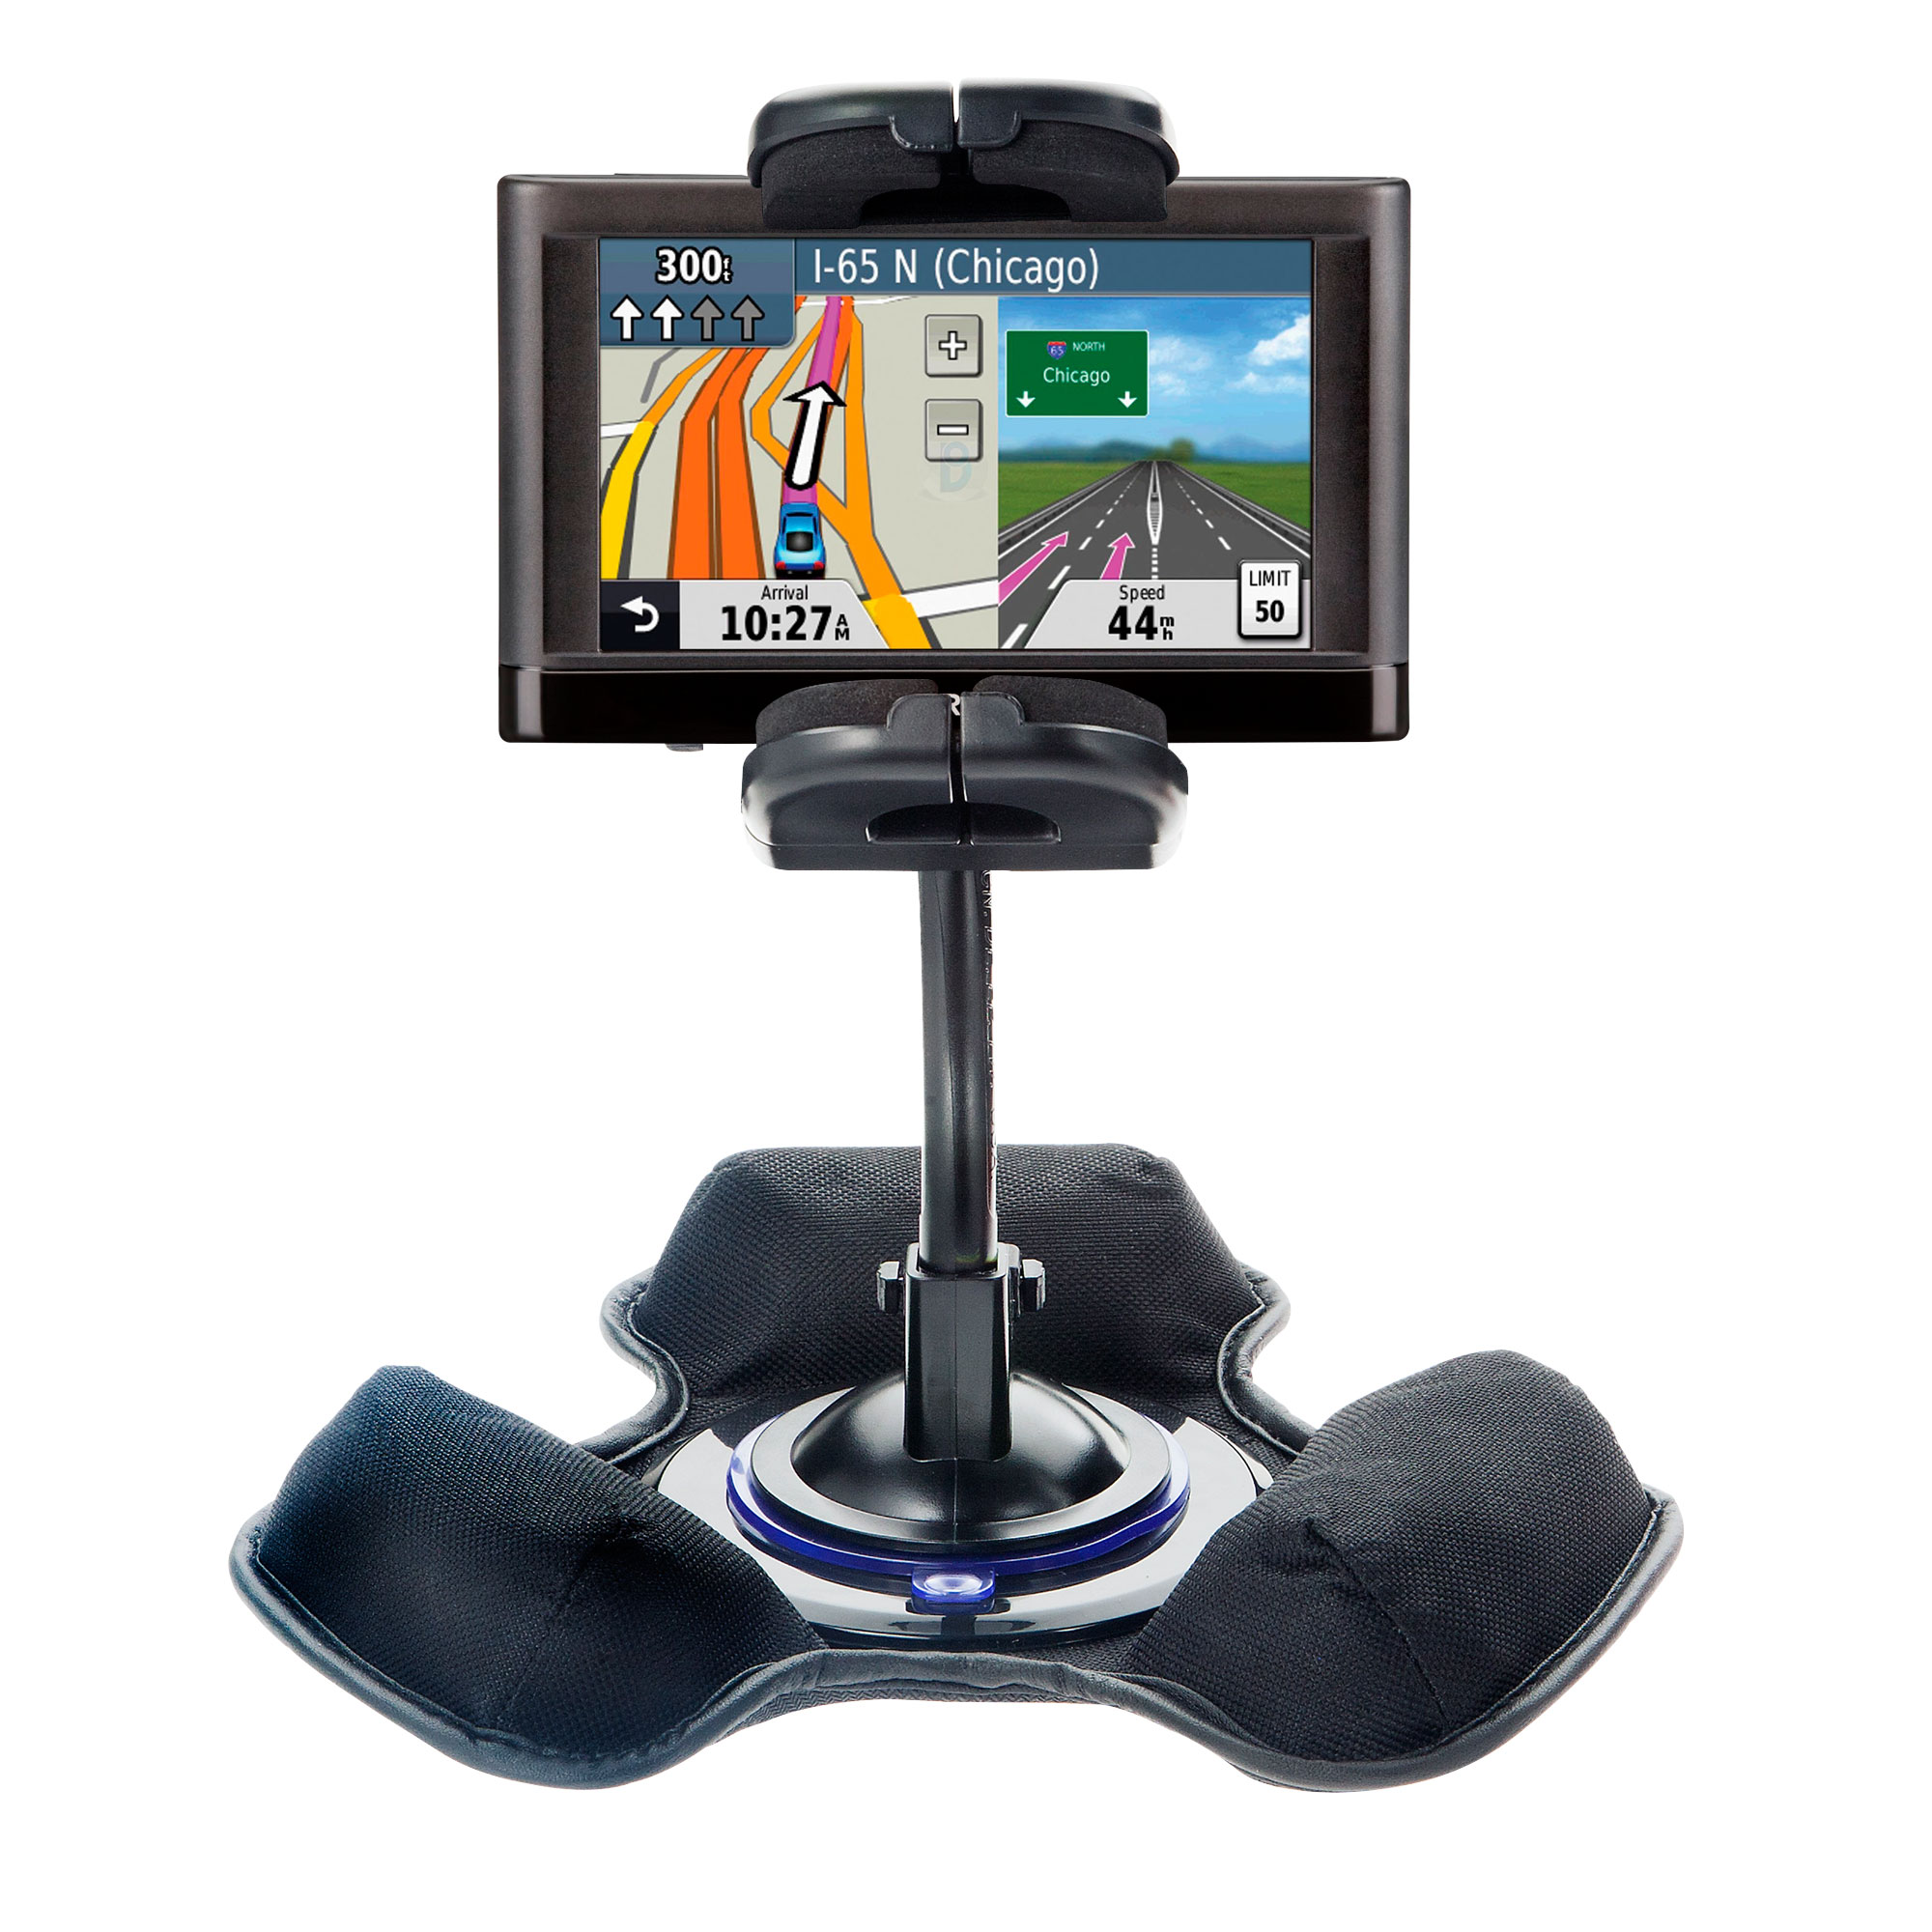 Dash and Windshield Holder compatible with the Garmin nuvi 52 / nuvi 54